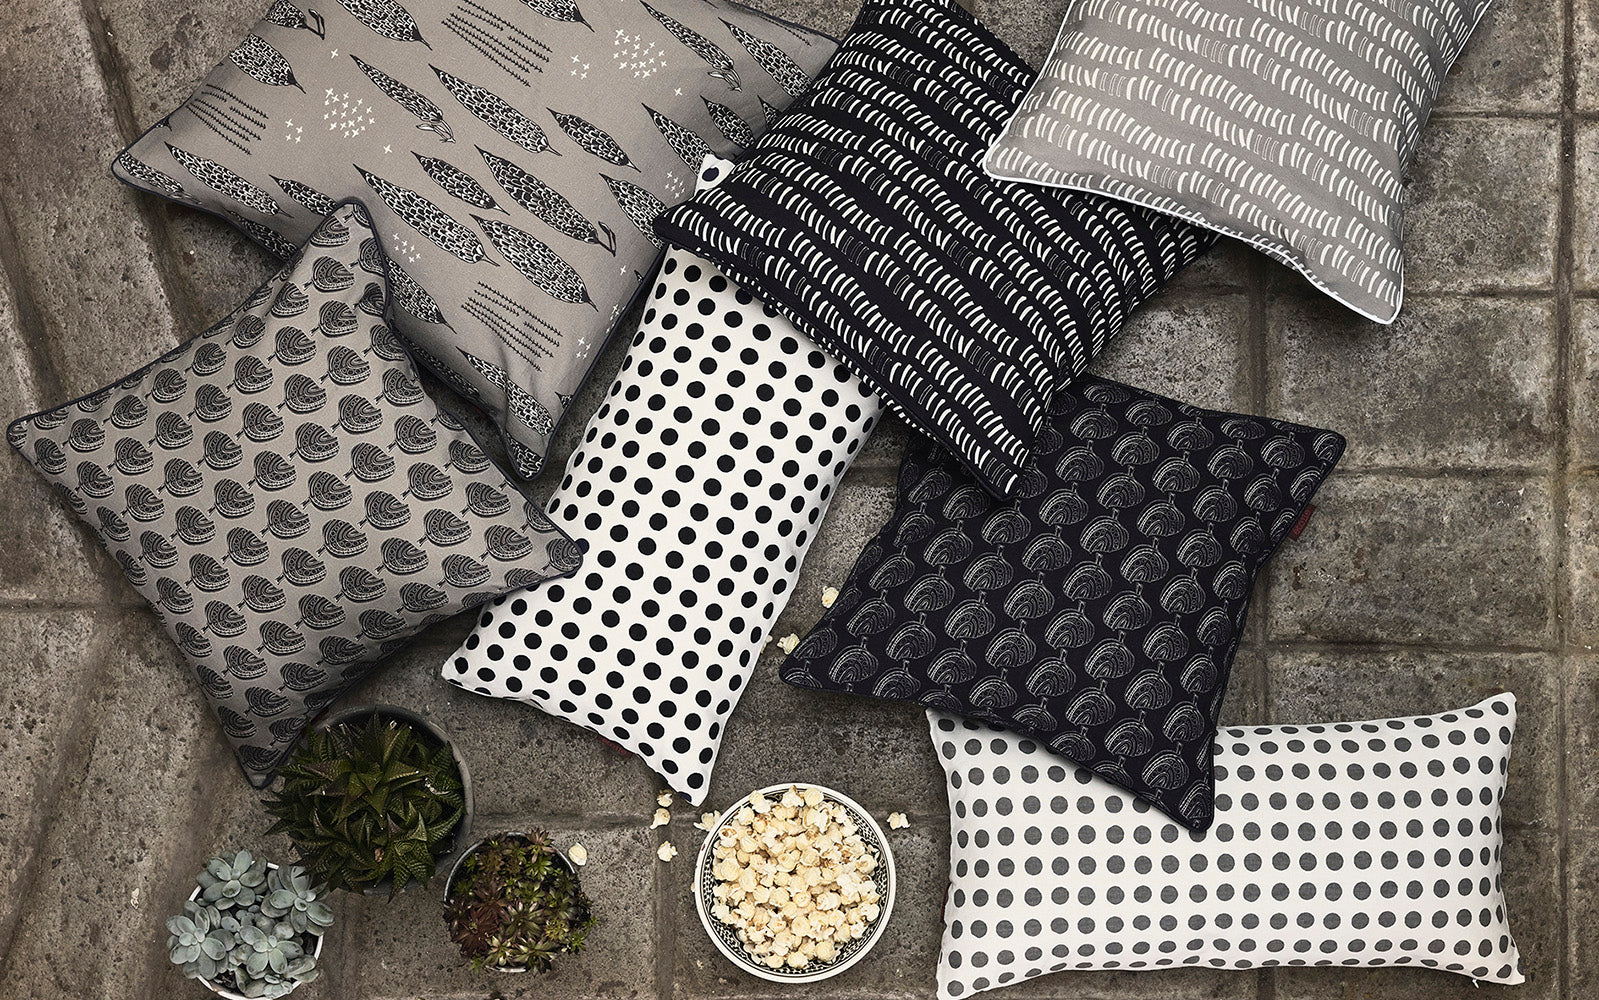 Black and grey designer decorative throw pillows ships from Canada worldwide including the USA